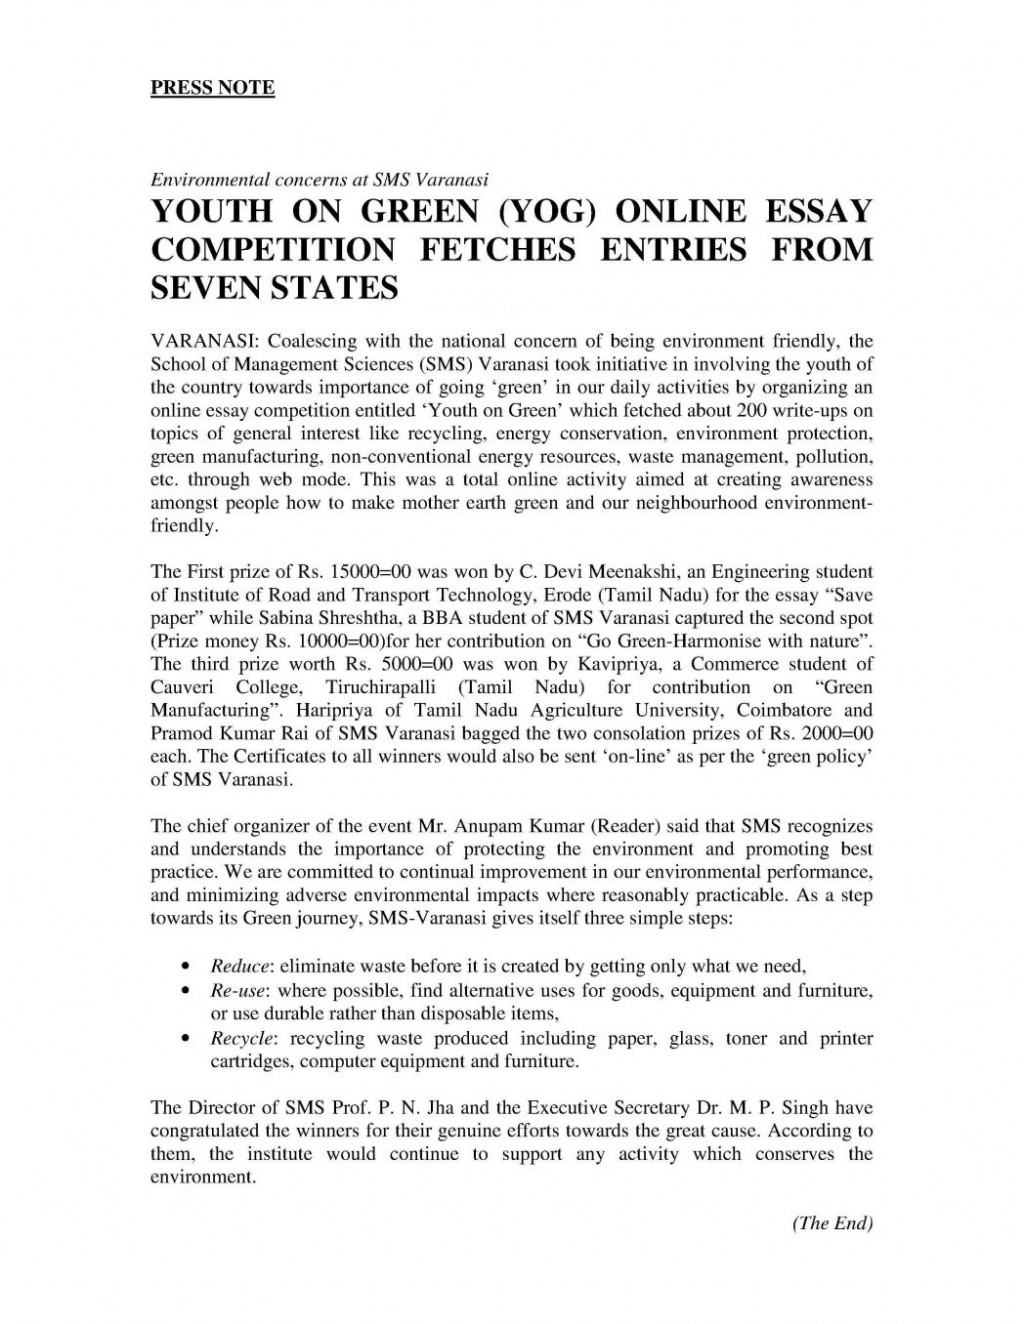 020 Best Essays For College Essay On Good Habits How Tot Application Online Yog Press Re About Yourself Examples Your Background Failure Prompt Off Hook 1048x1356 Example Amazing To Start An Can I A Book Observation With Quote Large